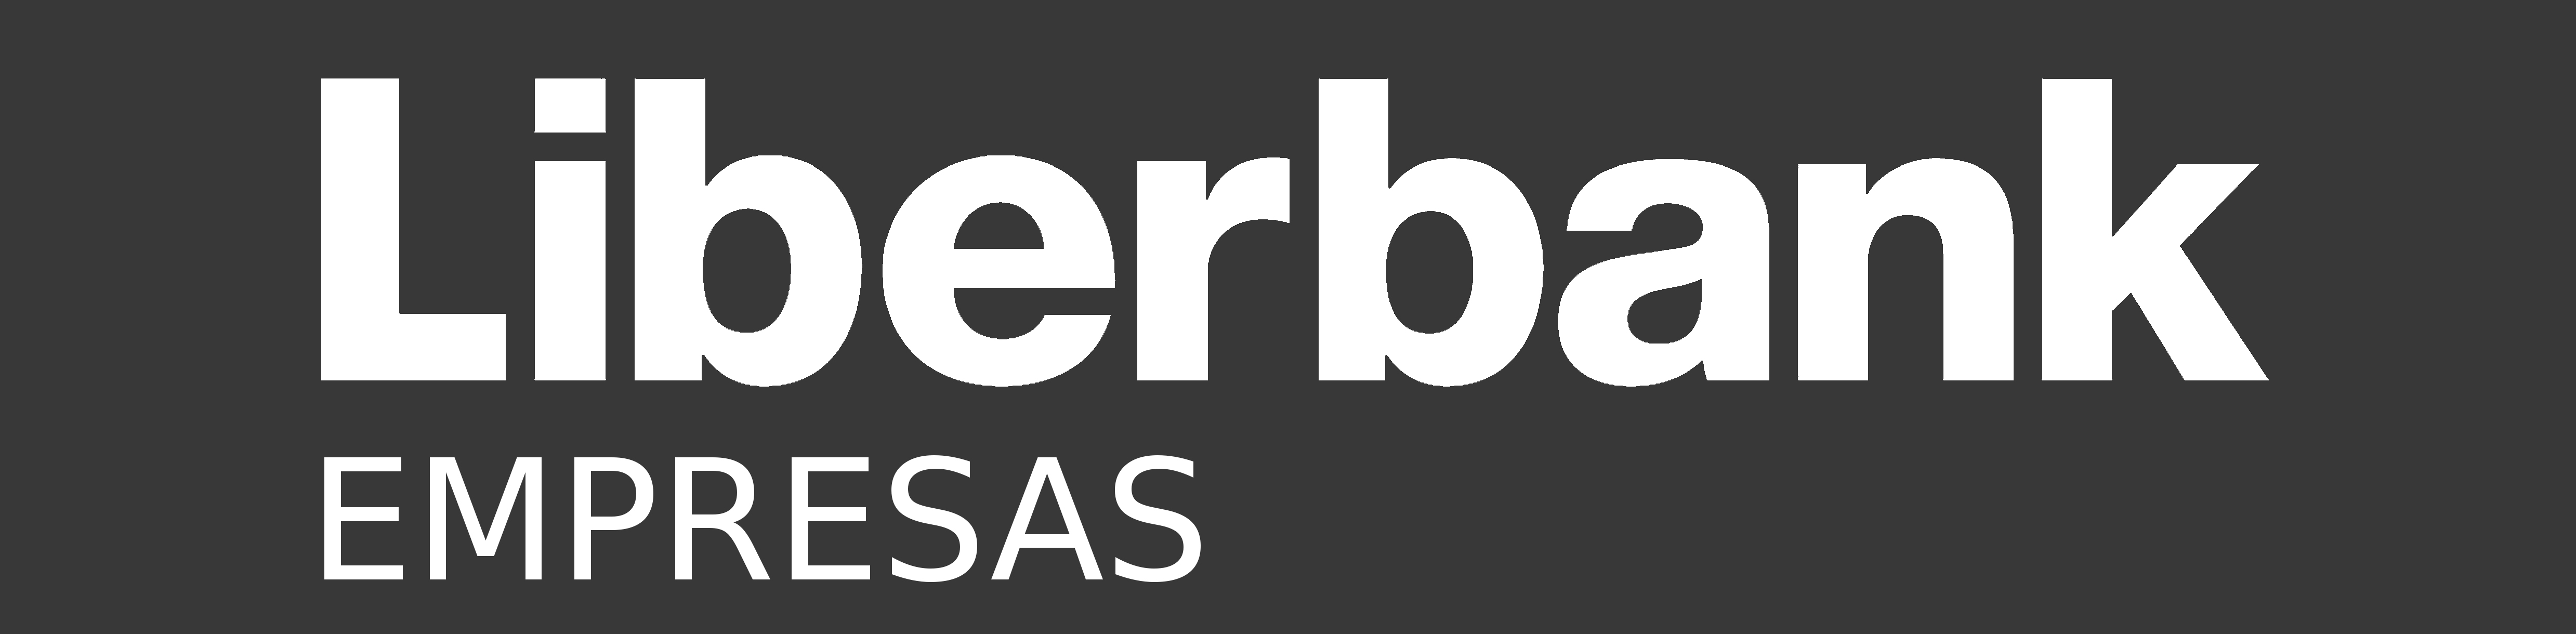 liberbank-patrocinio-fade-saludable